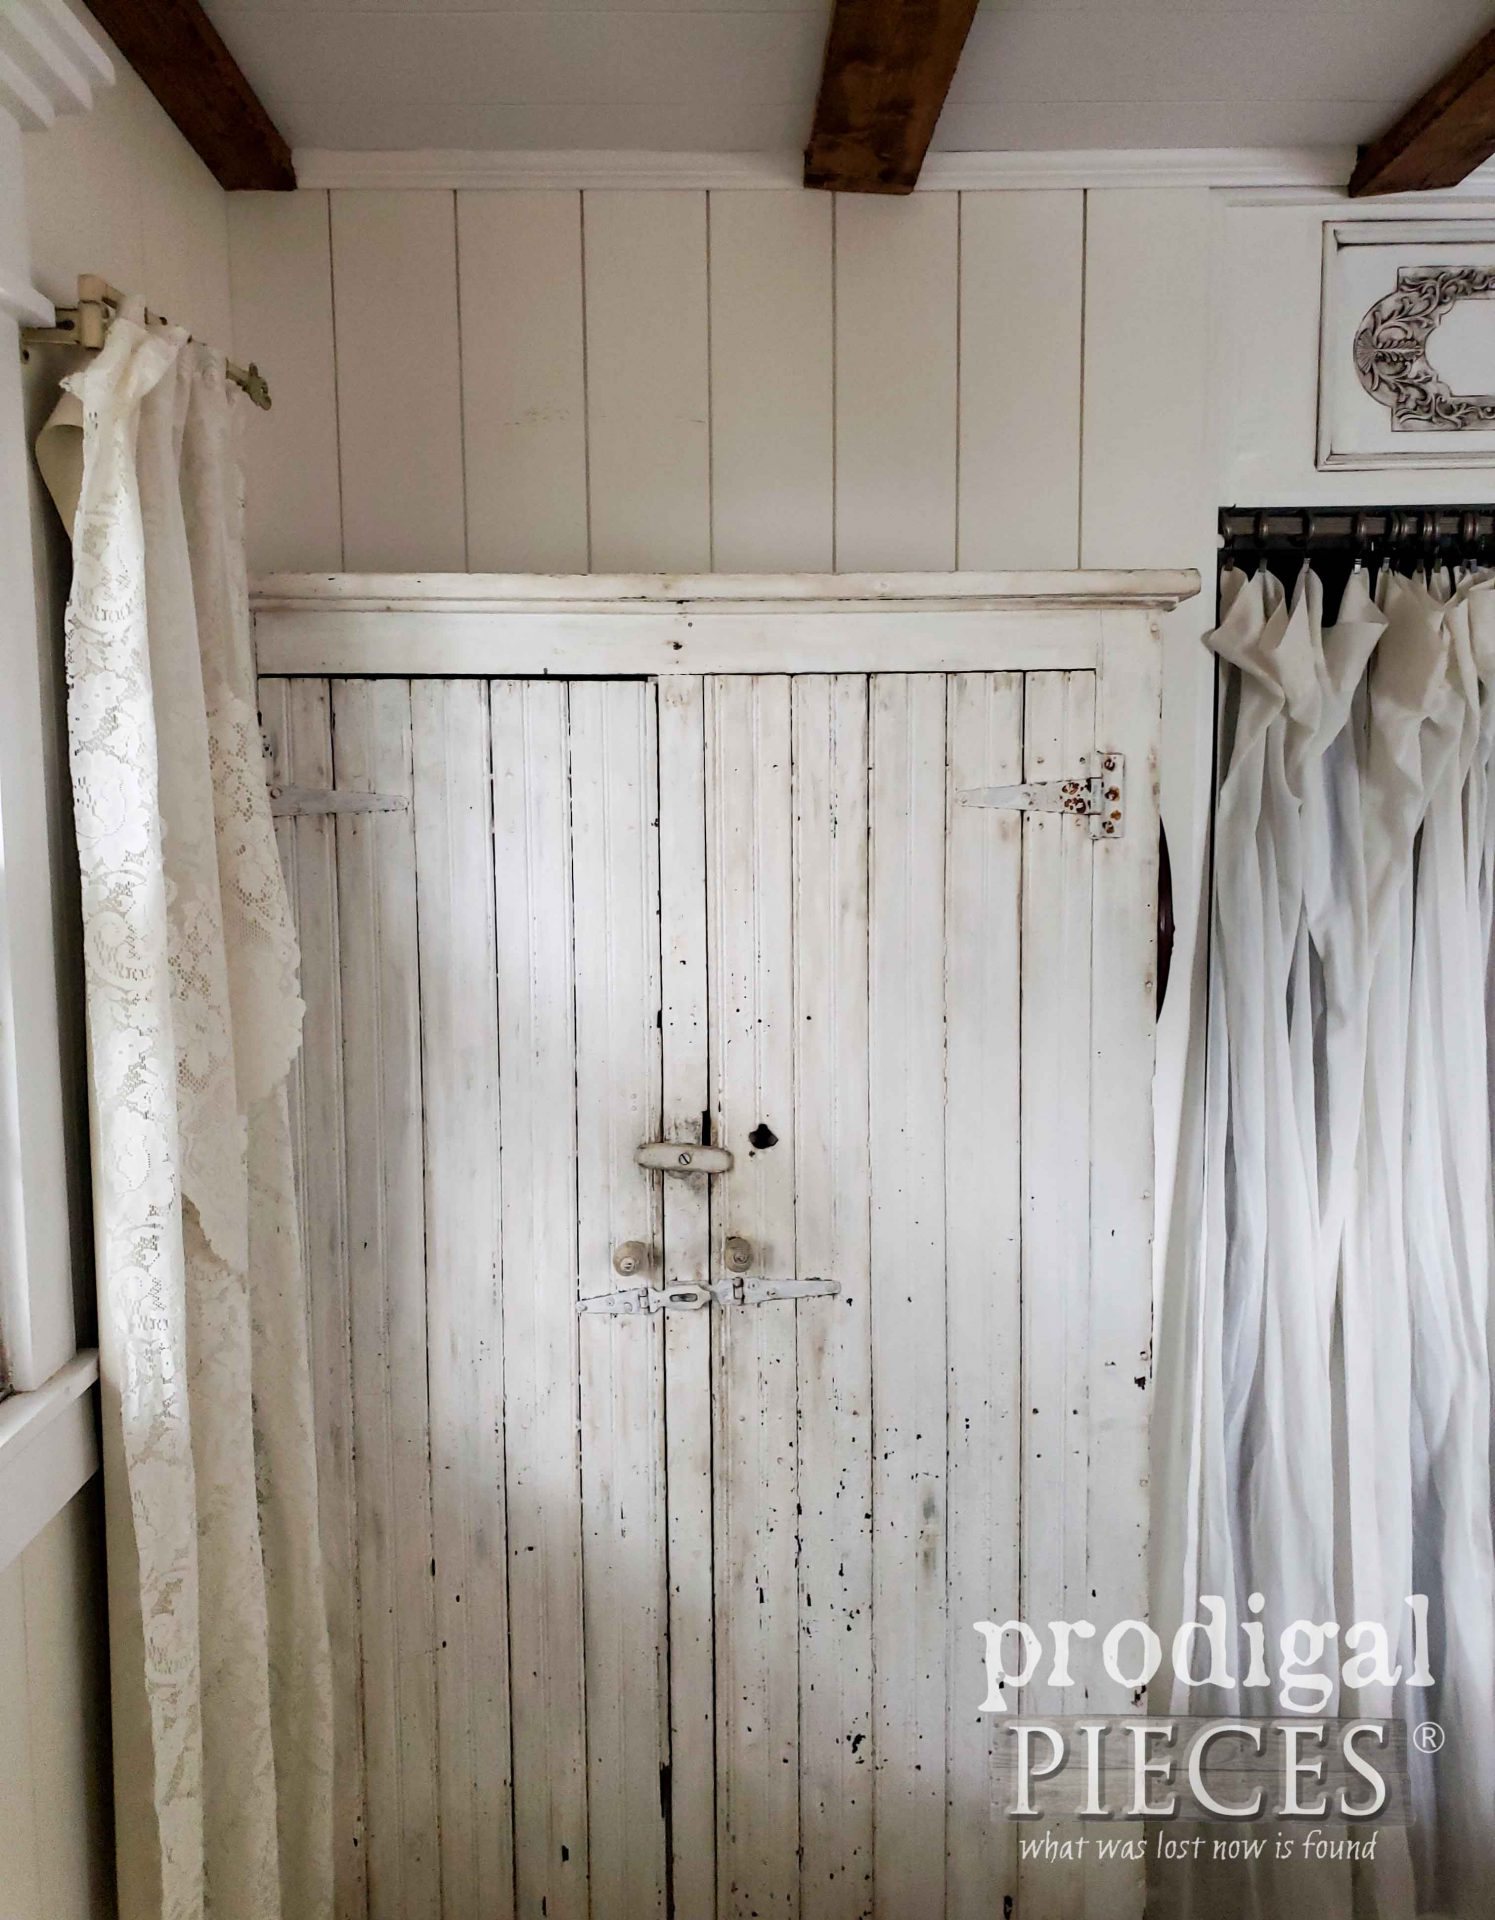 Chippy White Antique Farmhouse Cupboard Before Farmhouse Fall Bedroom Decor | prodigalpieces.com #prodigalpieces #farmhouse